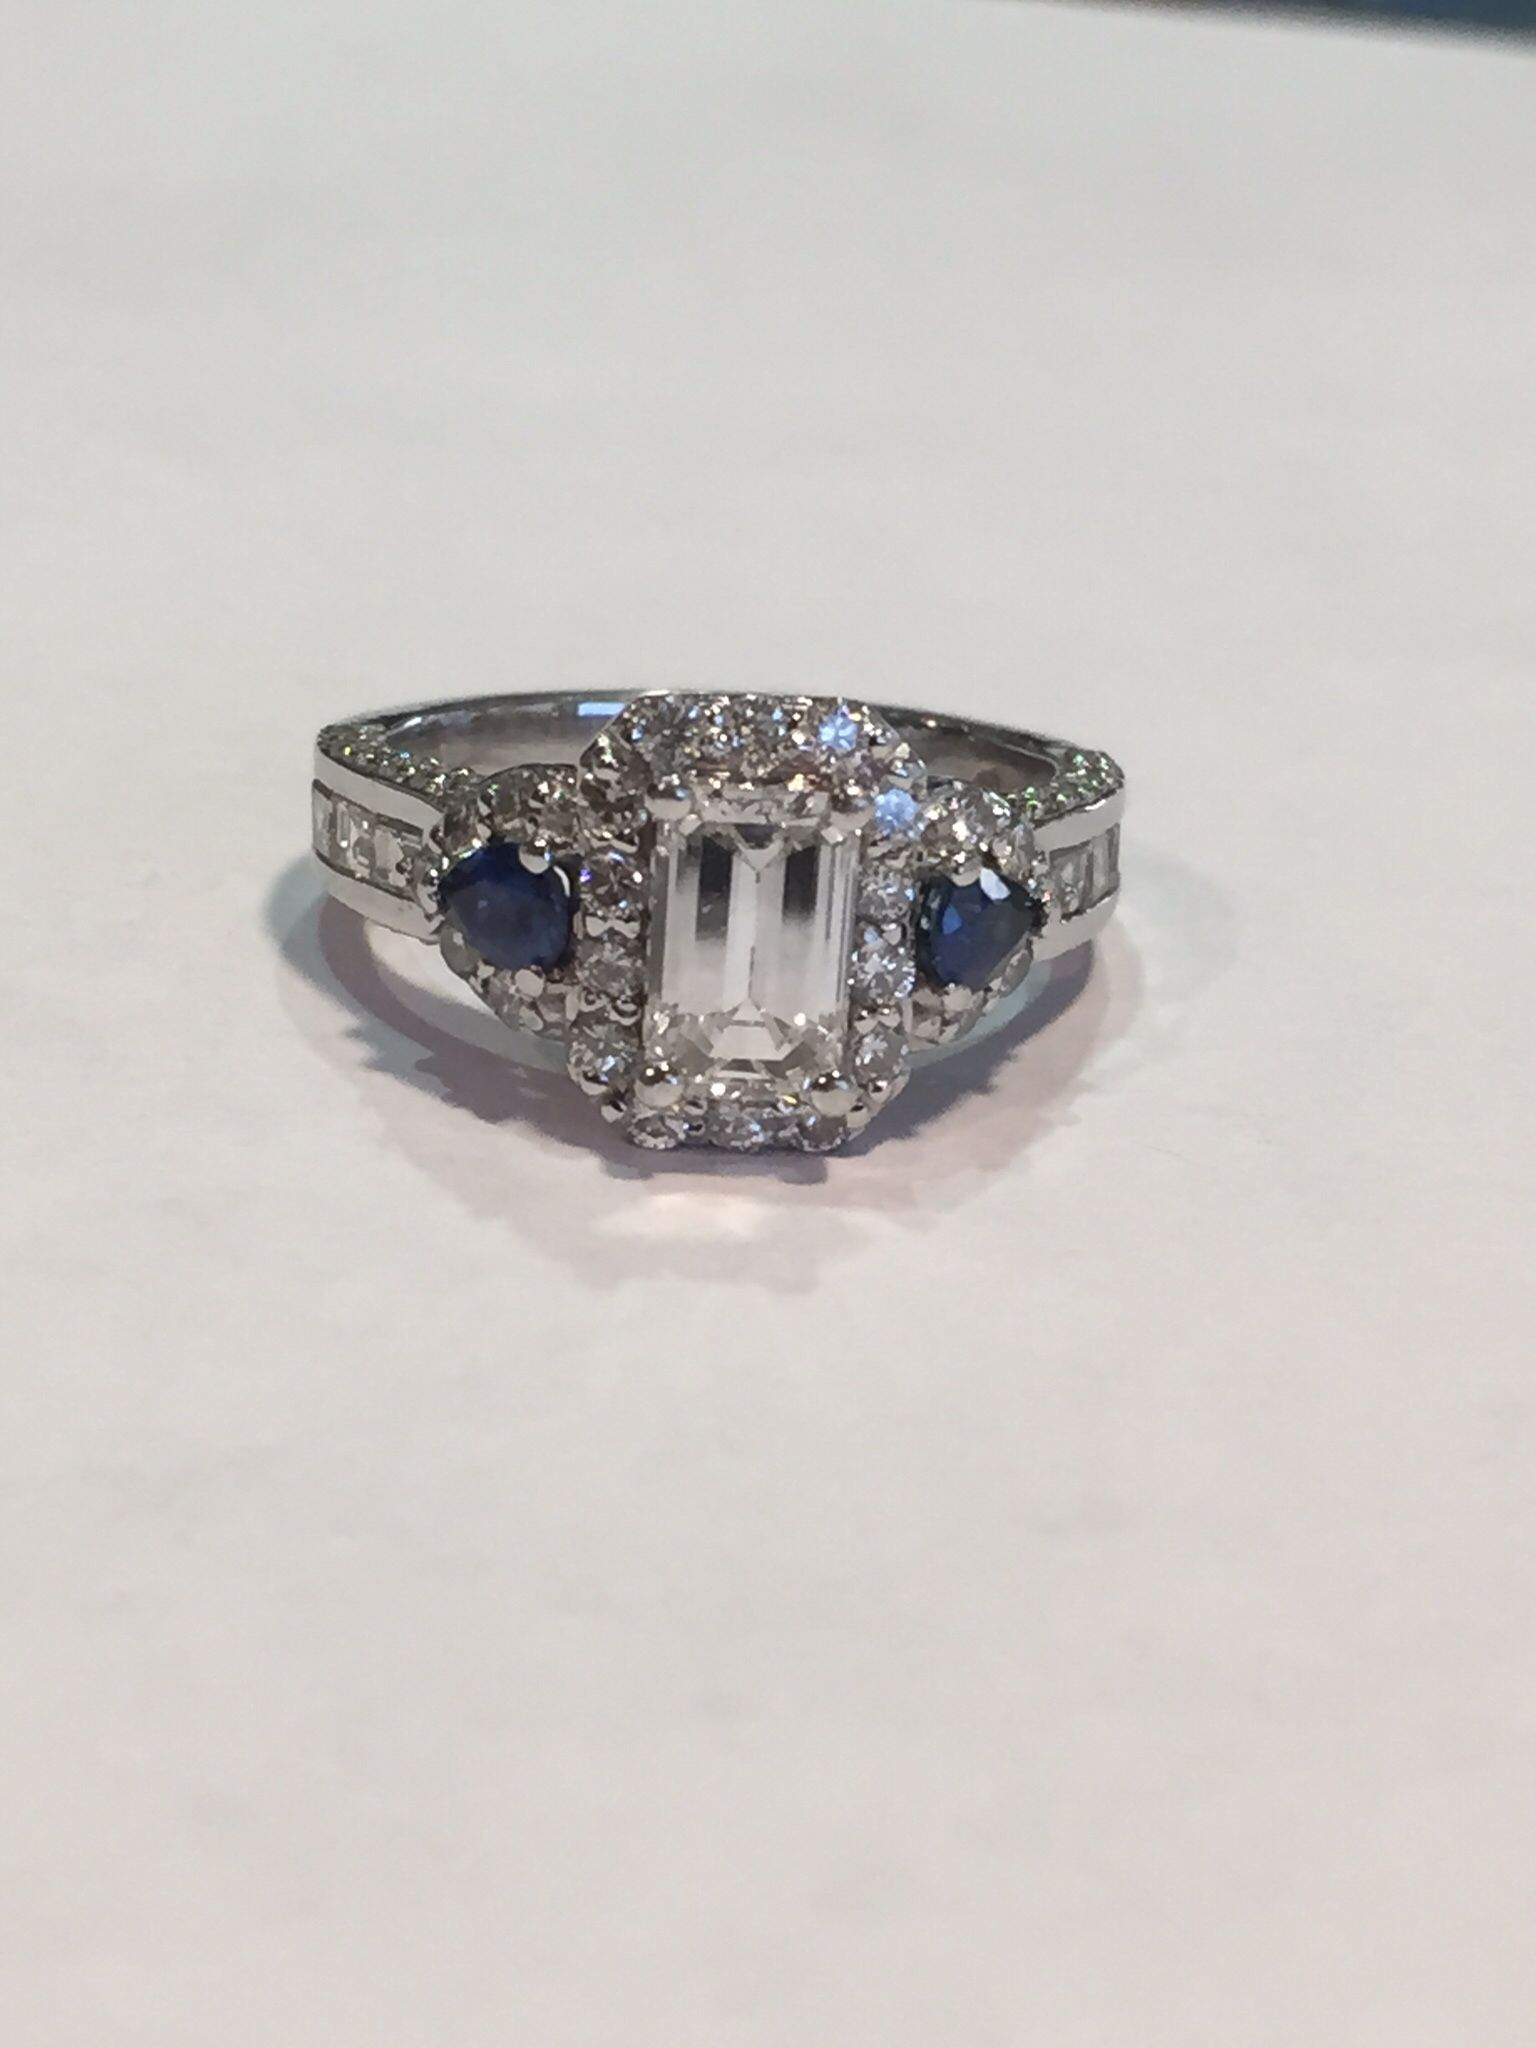 Halo Settings Added Around Center Emerald Cut Diamond And Tear Drop